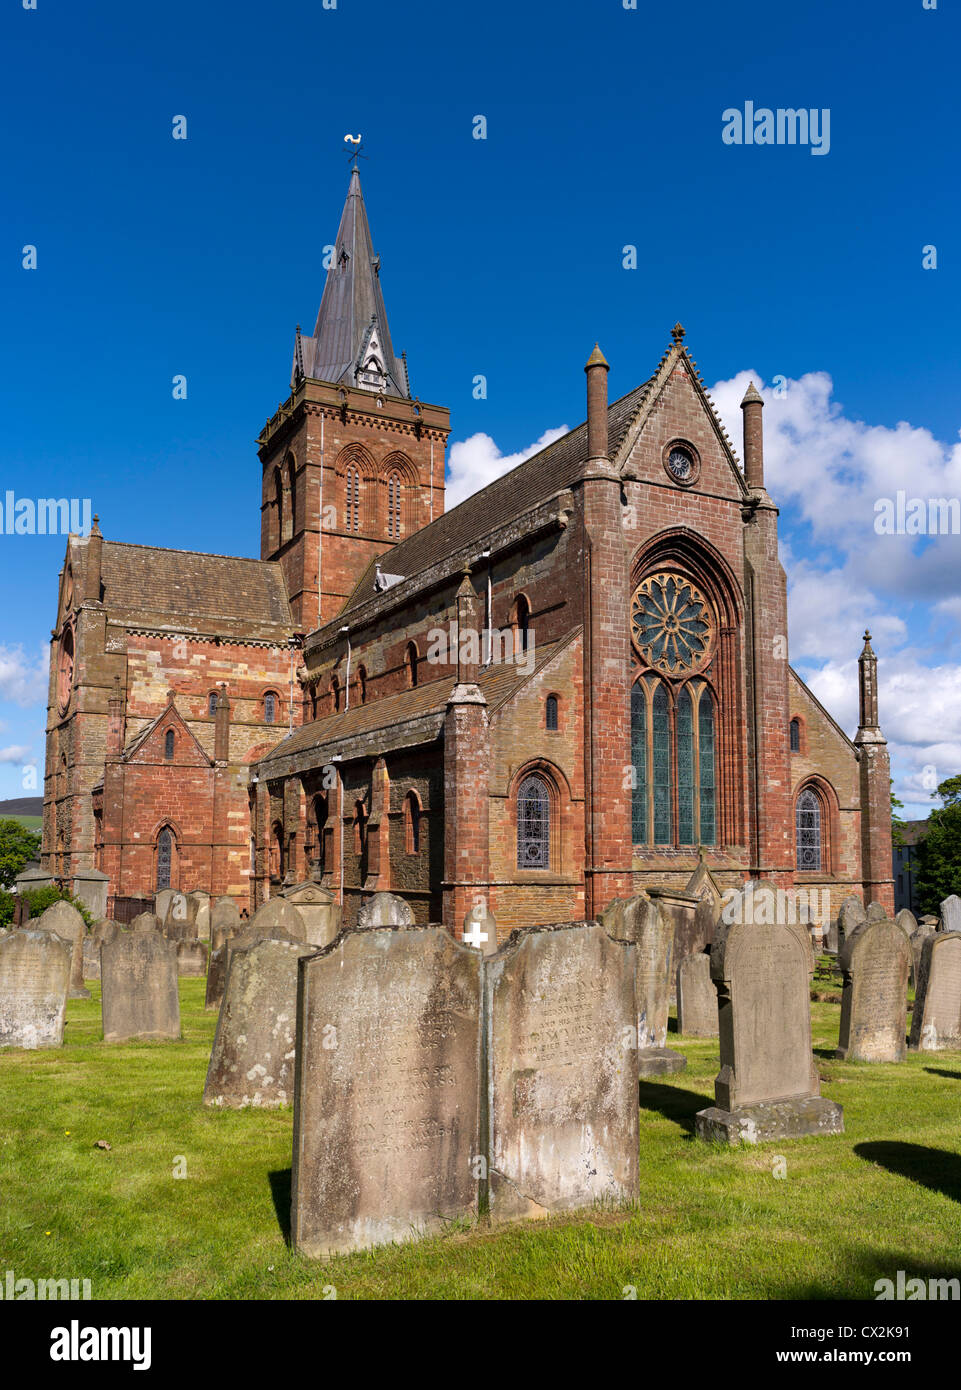 dh St Magnus Cathedral KIRKWALL ORKNEY Eastside of cathedral and graveyard orkneys Stock Photo